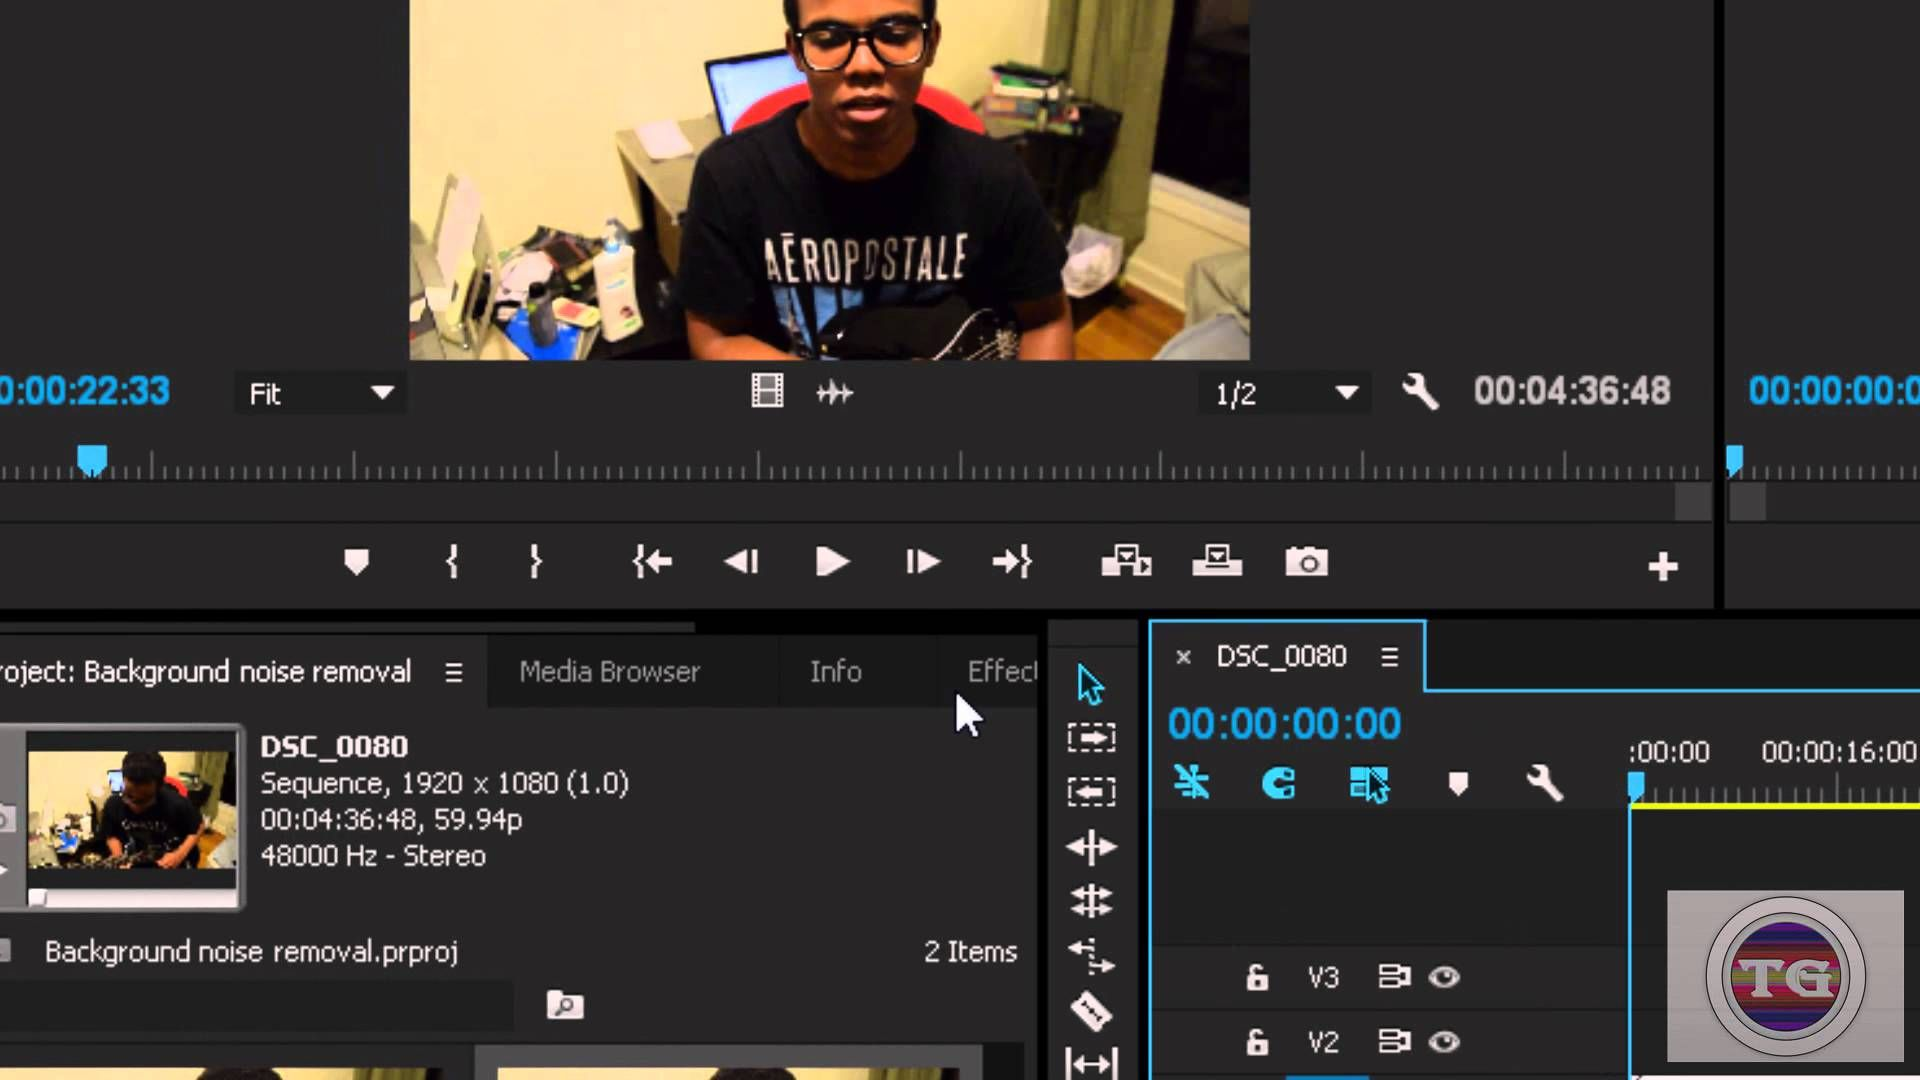 How To Remove Background Noise In Adobe Premiere CC